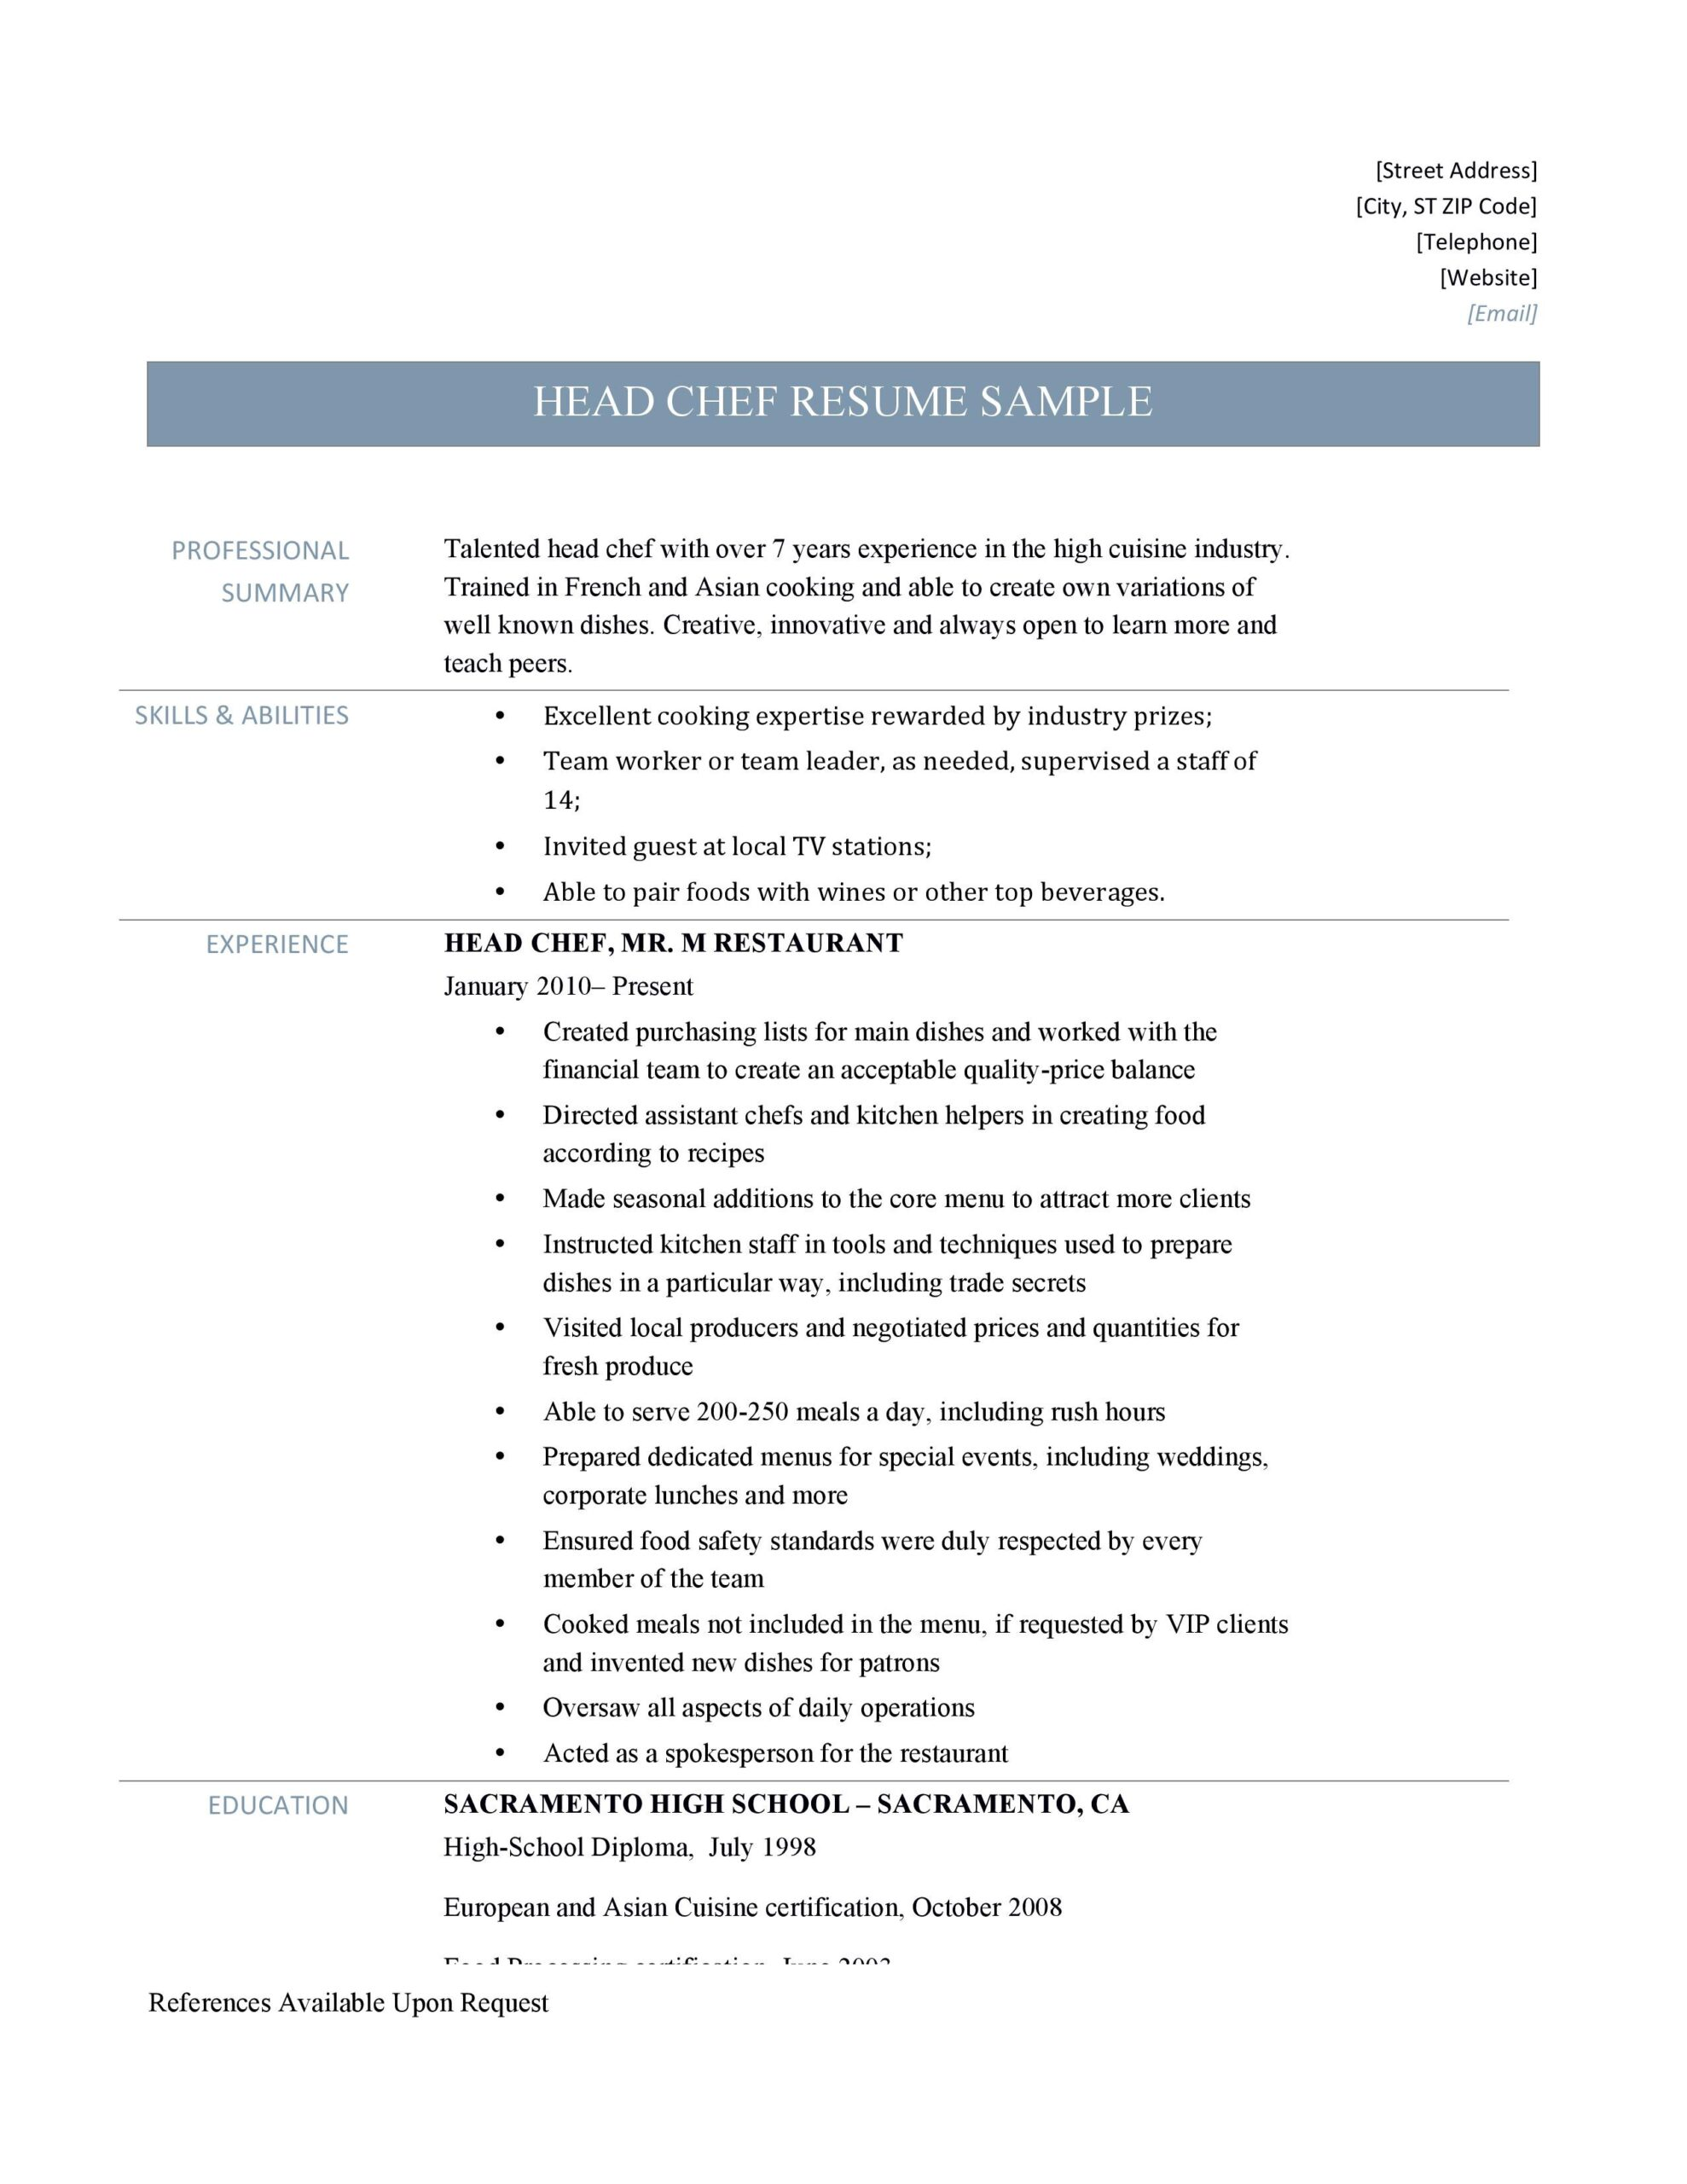 head chef resume samples and job description by builders medium summary examples Resume Chef Resume Summary Examples